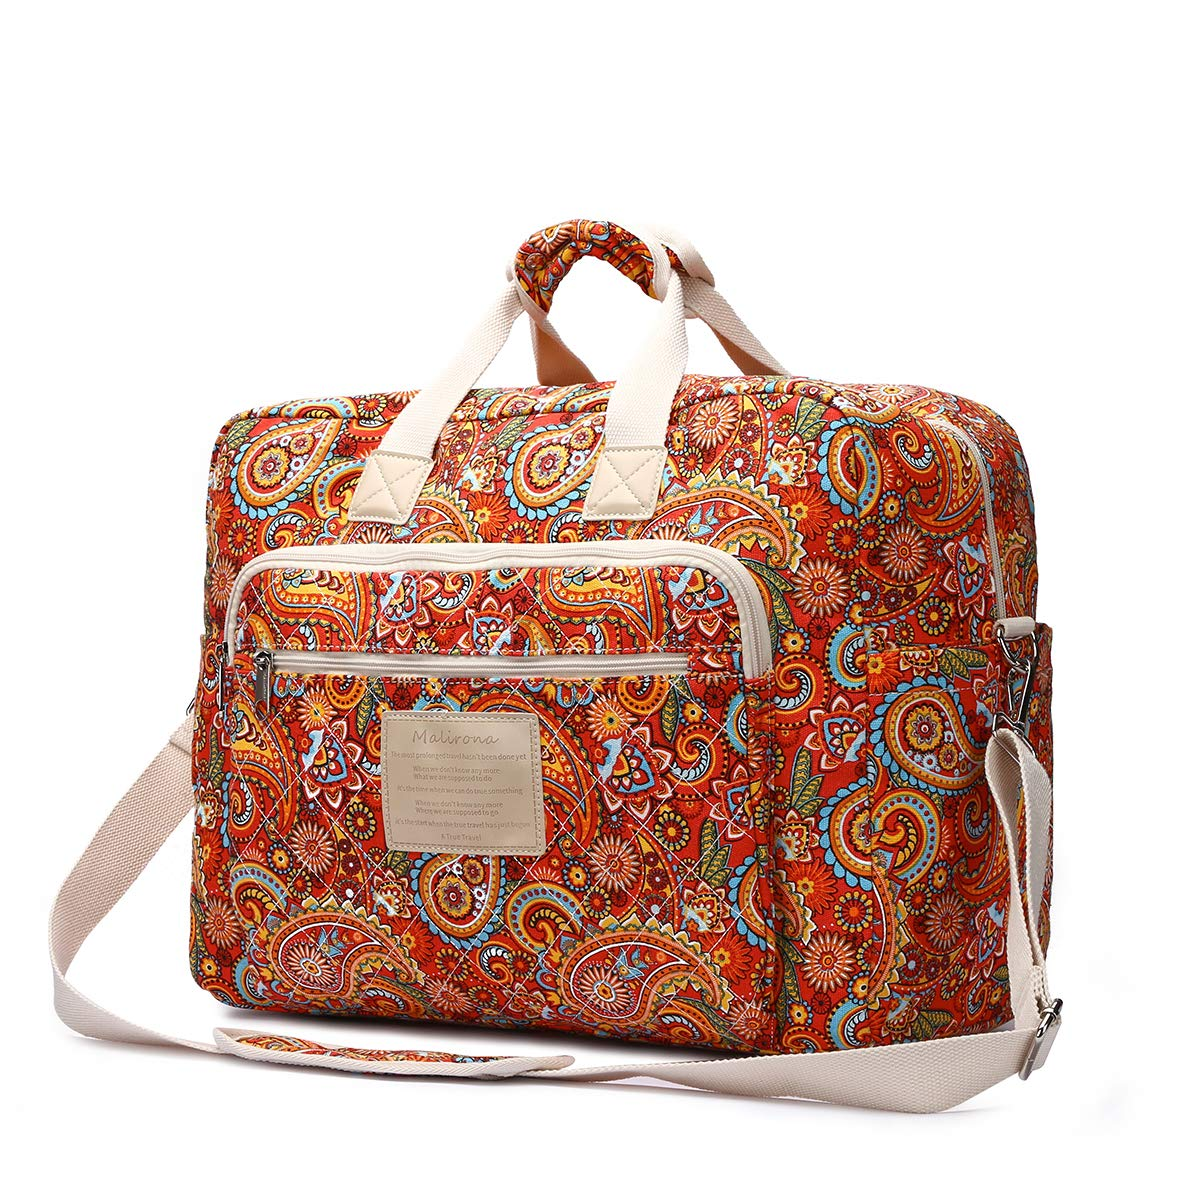 Malirona Women's Canvas Overnight Weekender Bag Carry On Travel Duffel Tote Bag Bohemian Flower (Red Flower) by Malirona (Image #2)